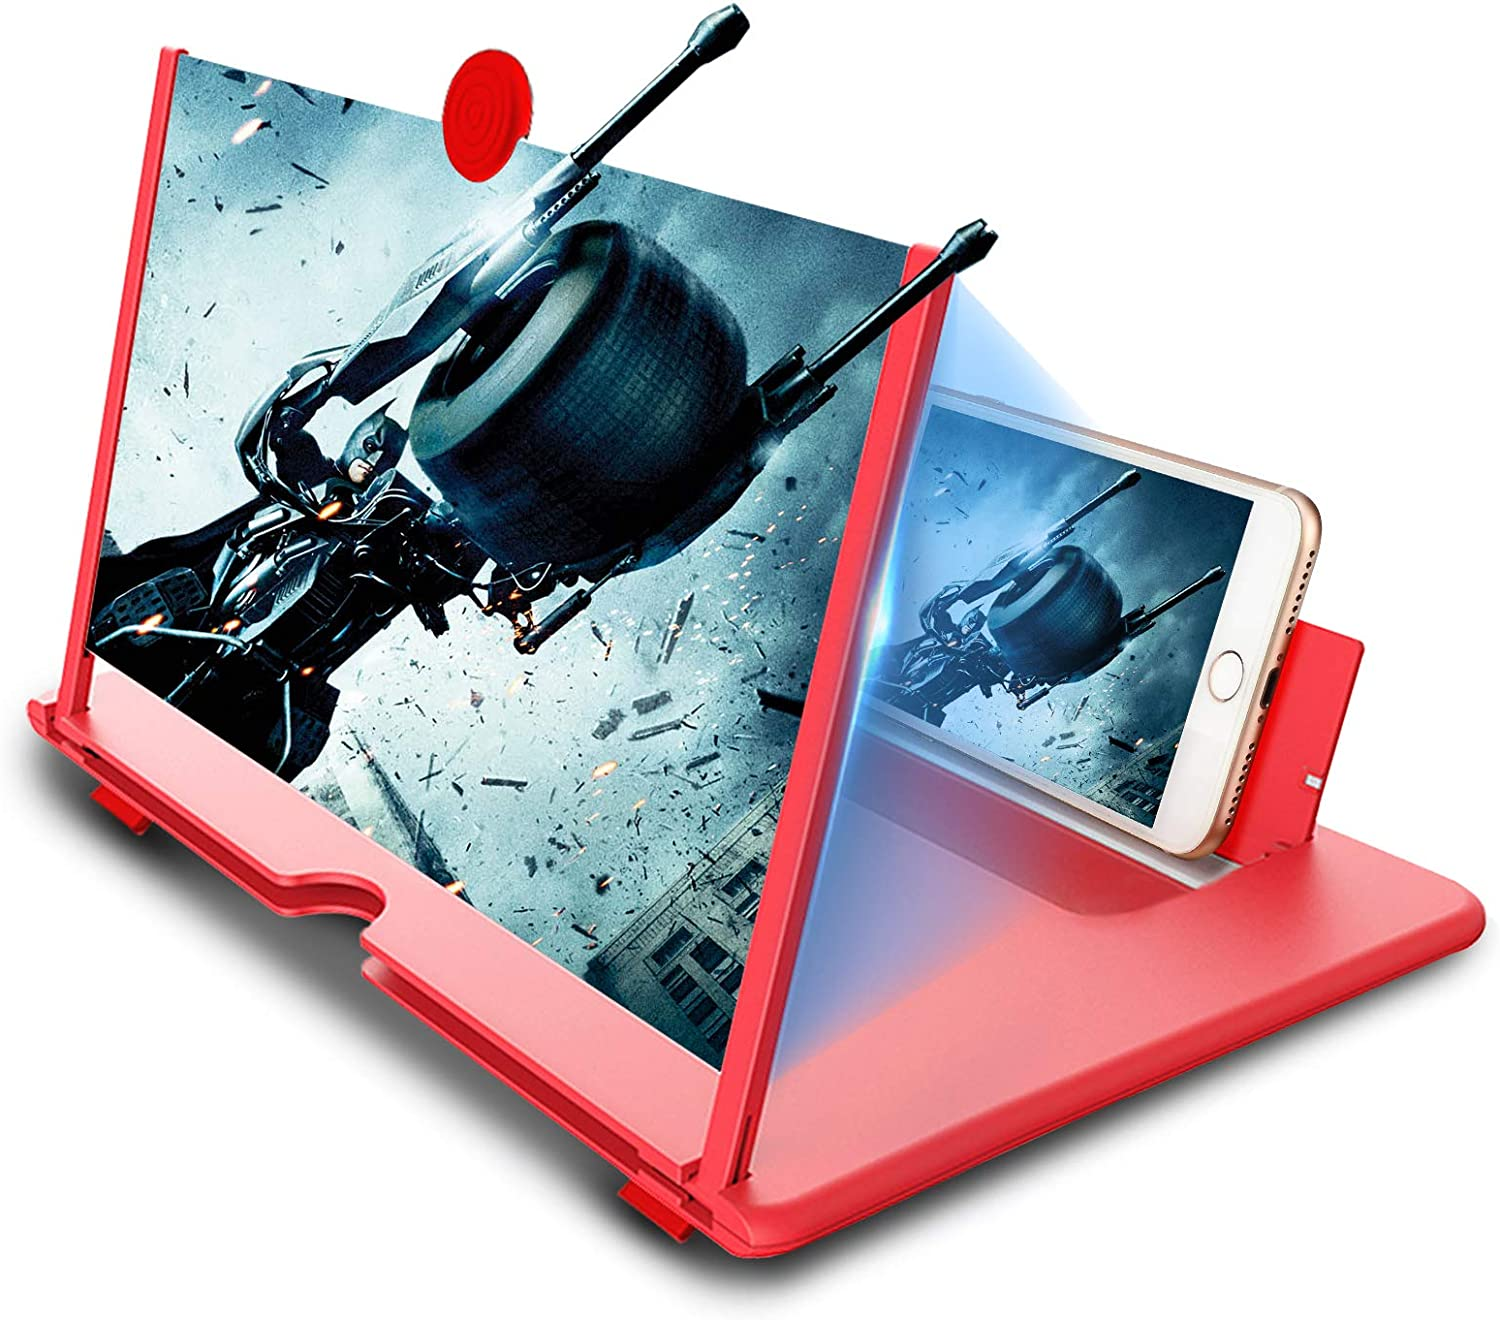 Newseego 12inch Phone Screen Magnifier Universal Flexible Adjustable Phone Stand Holder /& Phone Screen Amplifier with Magnifying Glass for Movies Videos and Gaming Supports All Smartphones-Black